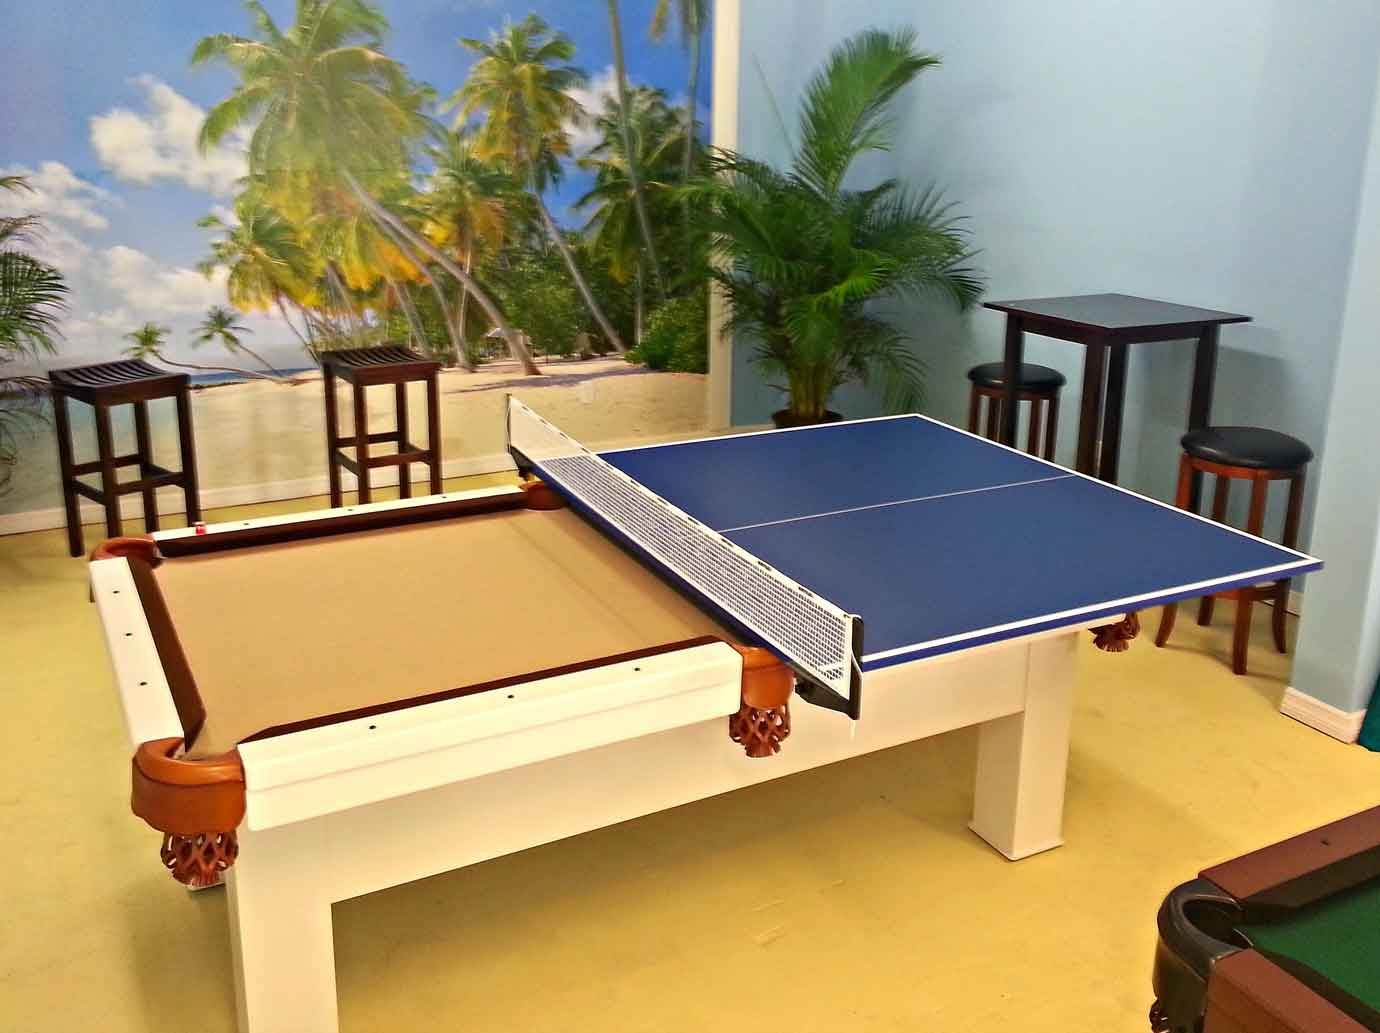 Custom outdoor pool table with sample of table tennis conversion top in R&R Outdoors All Weather Billiards showroom